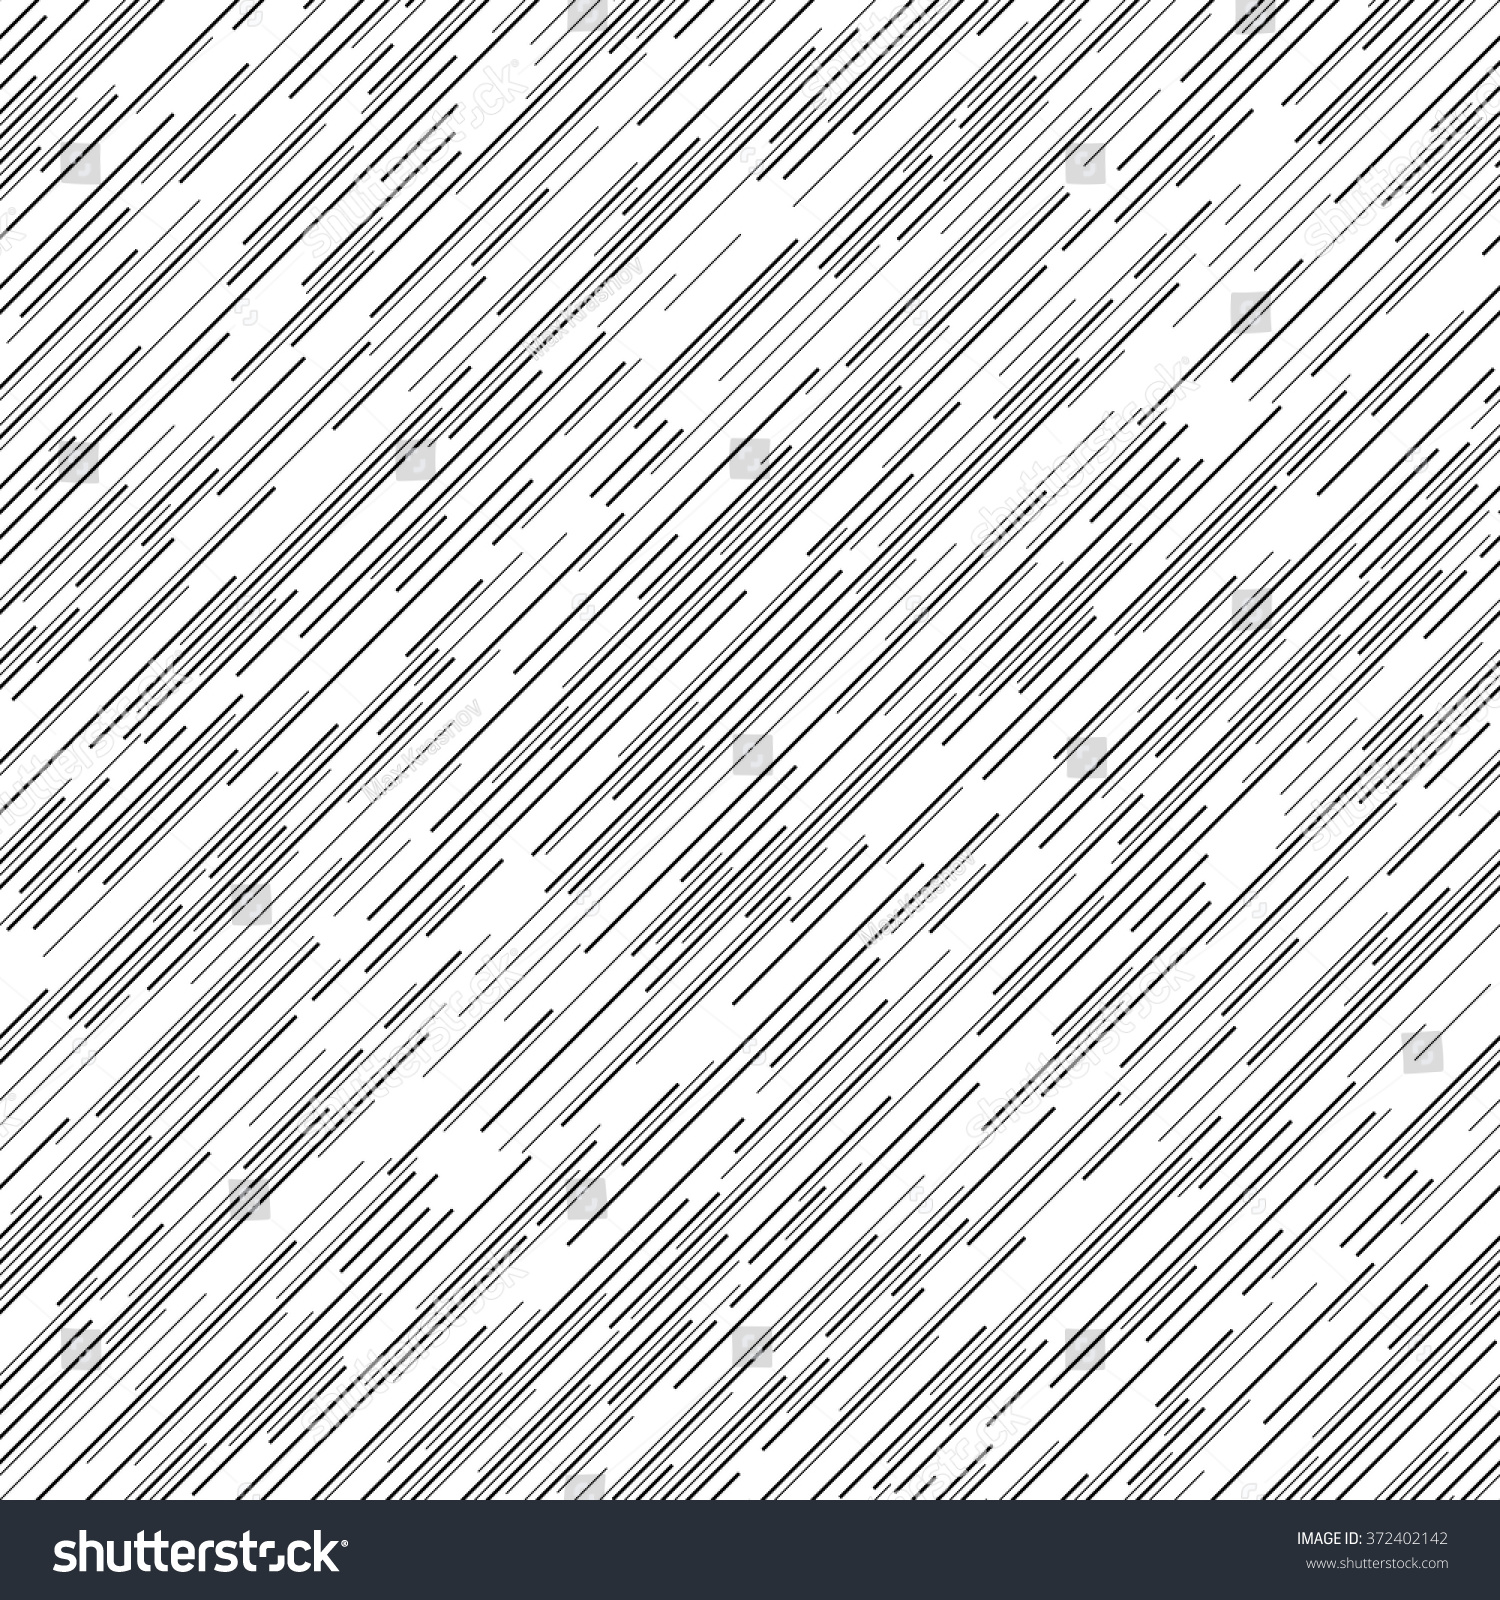 Line Texture Background : Seamless diagonal line pattern vector black stock